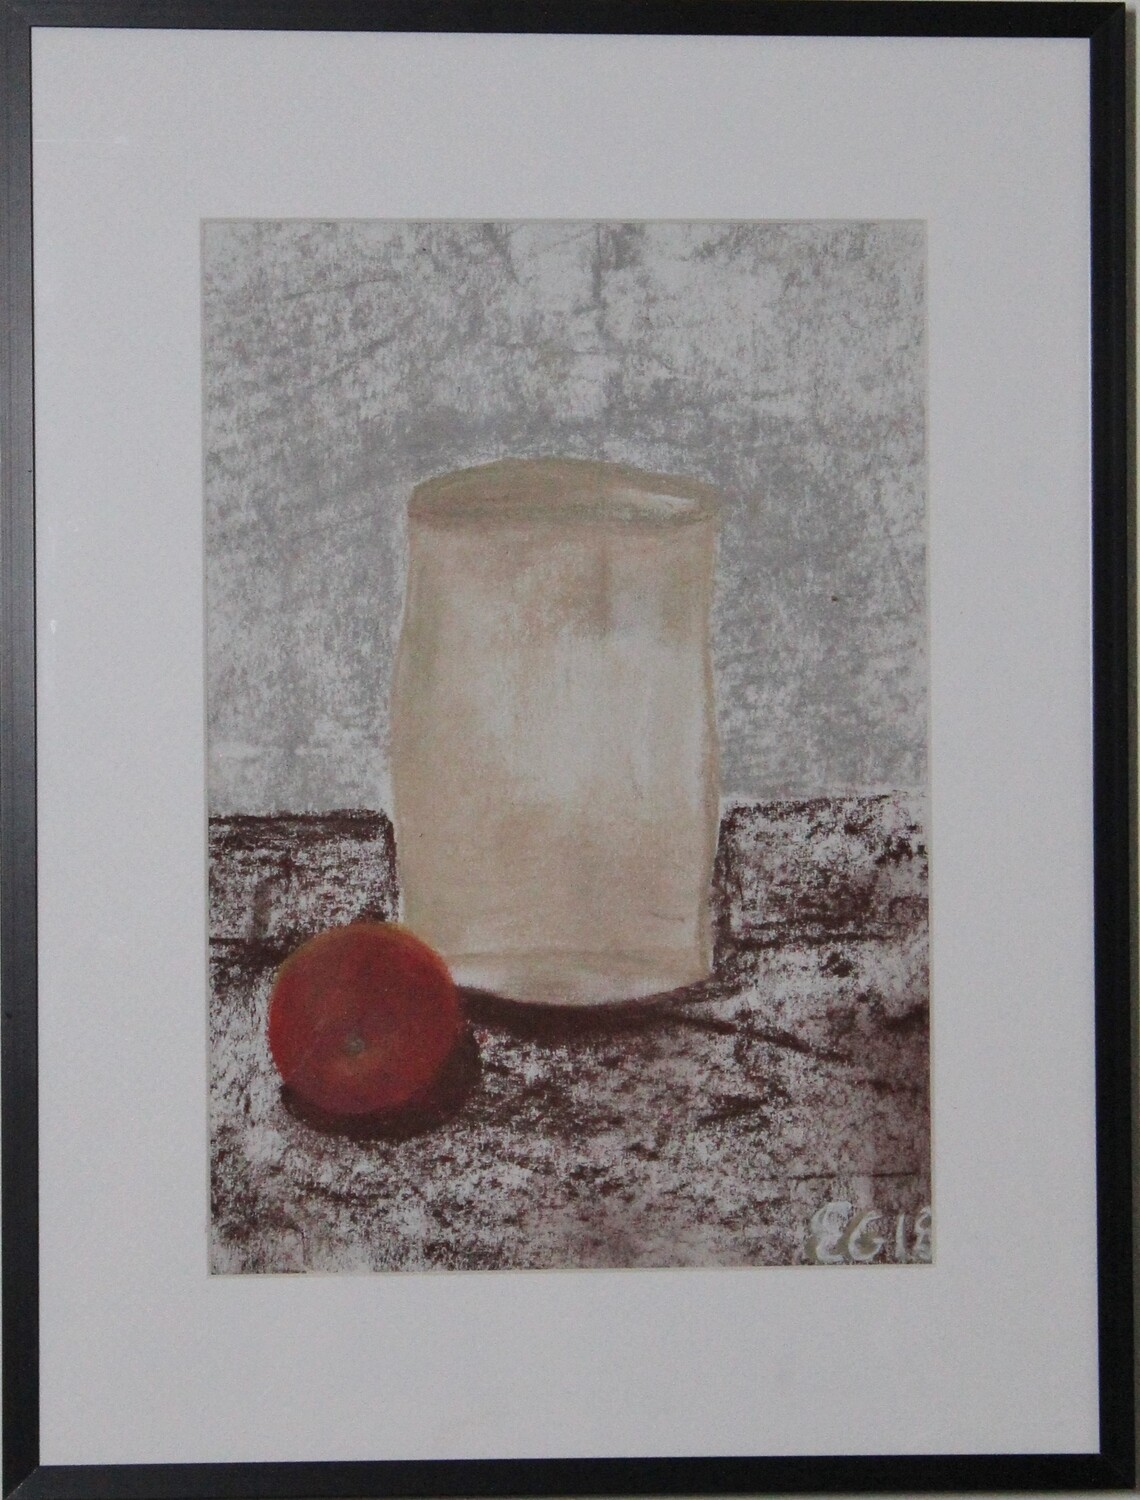 Vase and apple - crayon on paper 40x30 cm